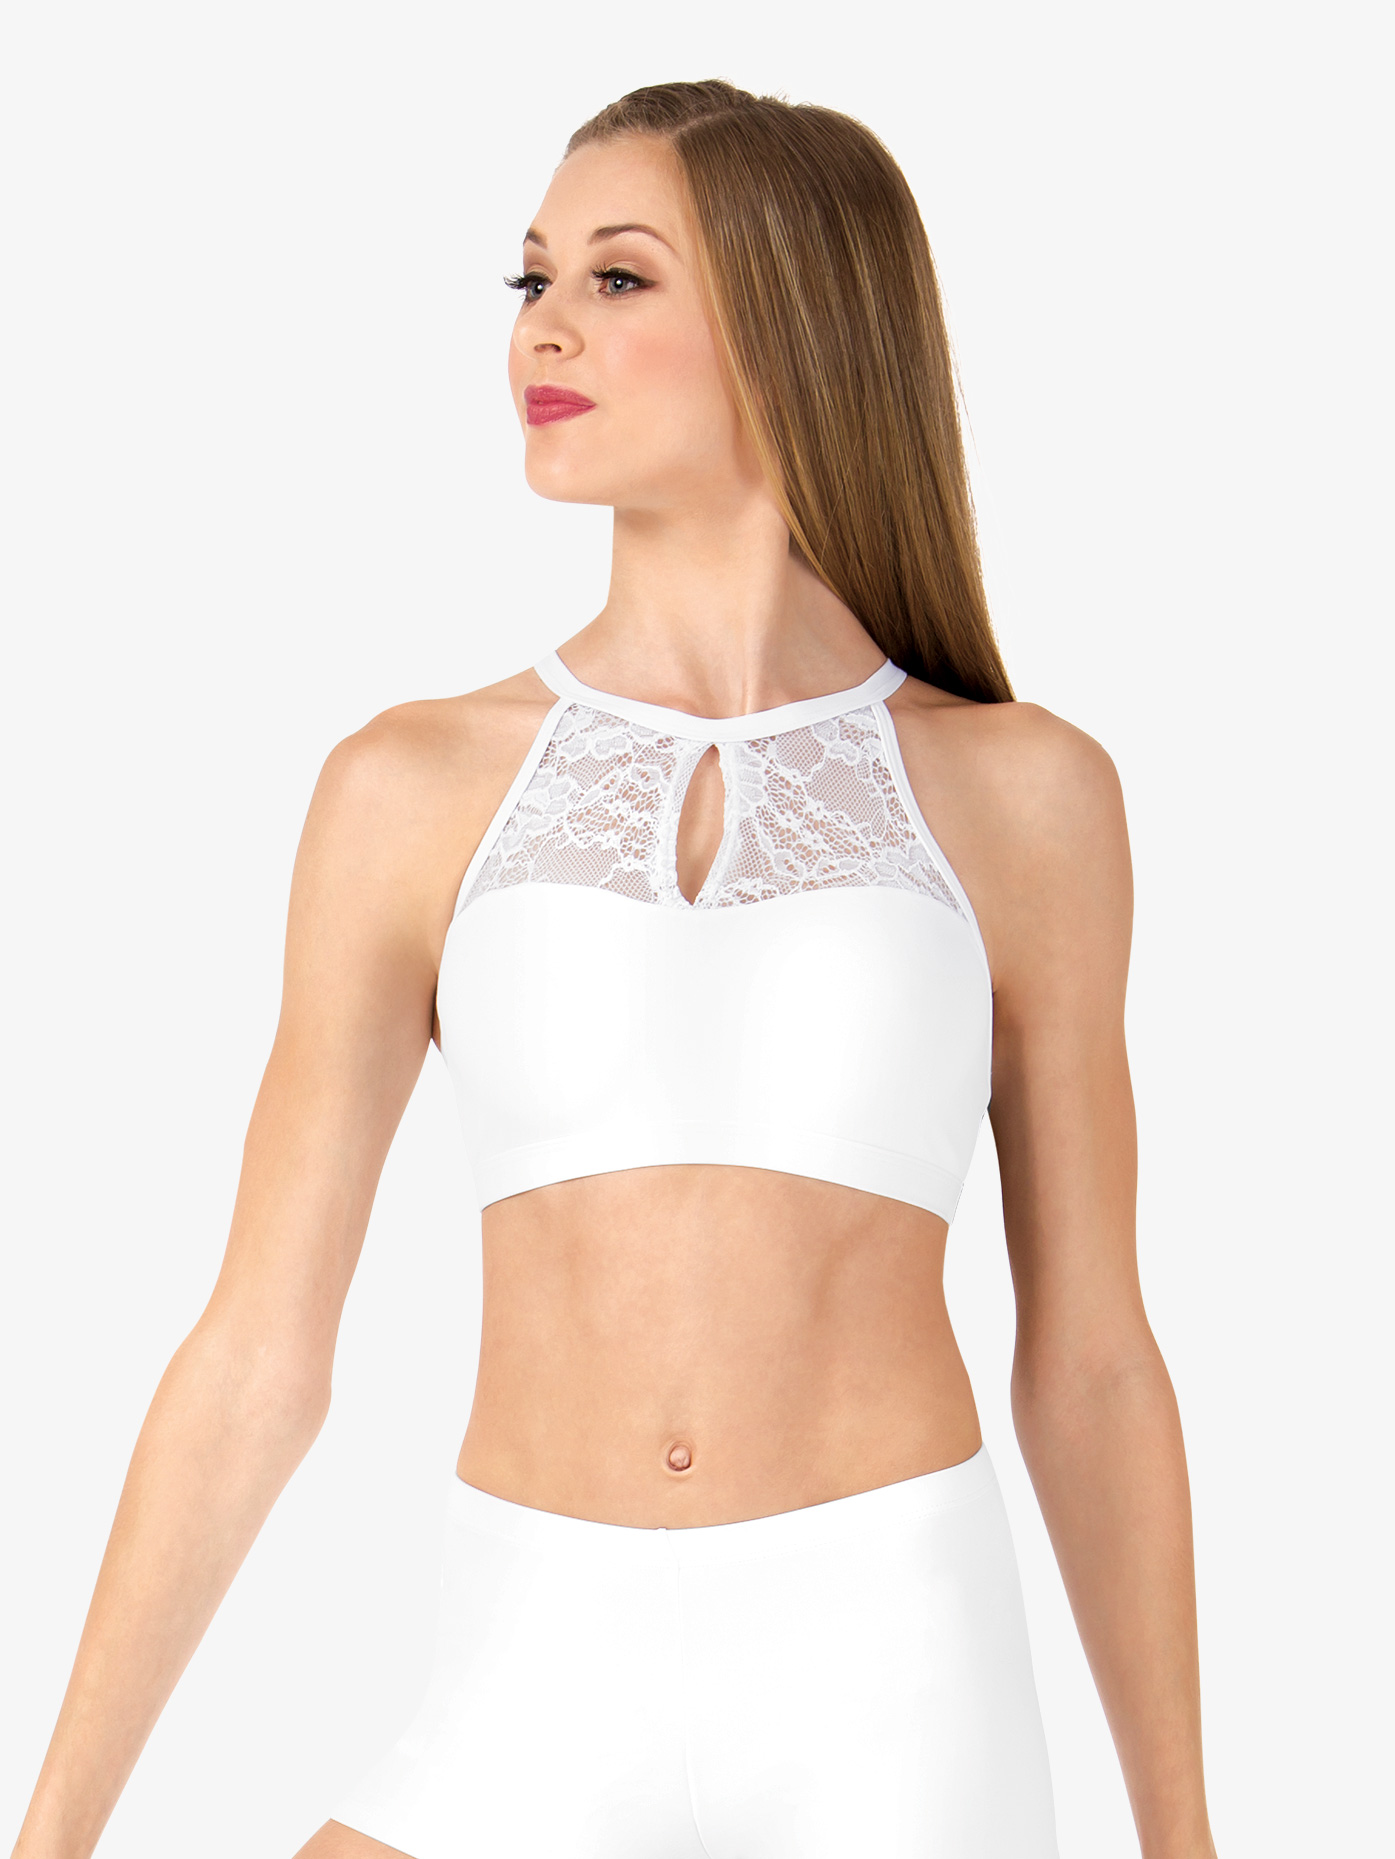 Body Wrappers Adult Keyhole Halter Lace Dance Crop Top LC9024